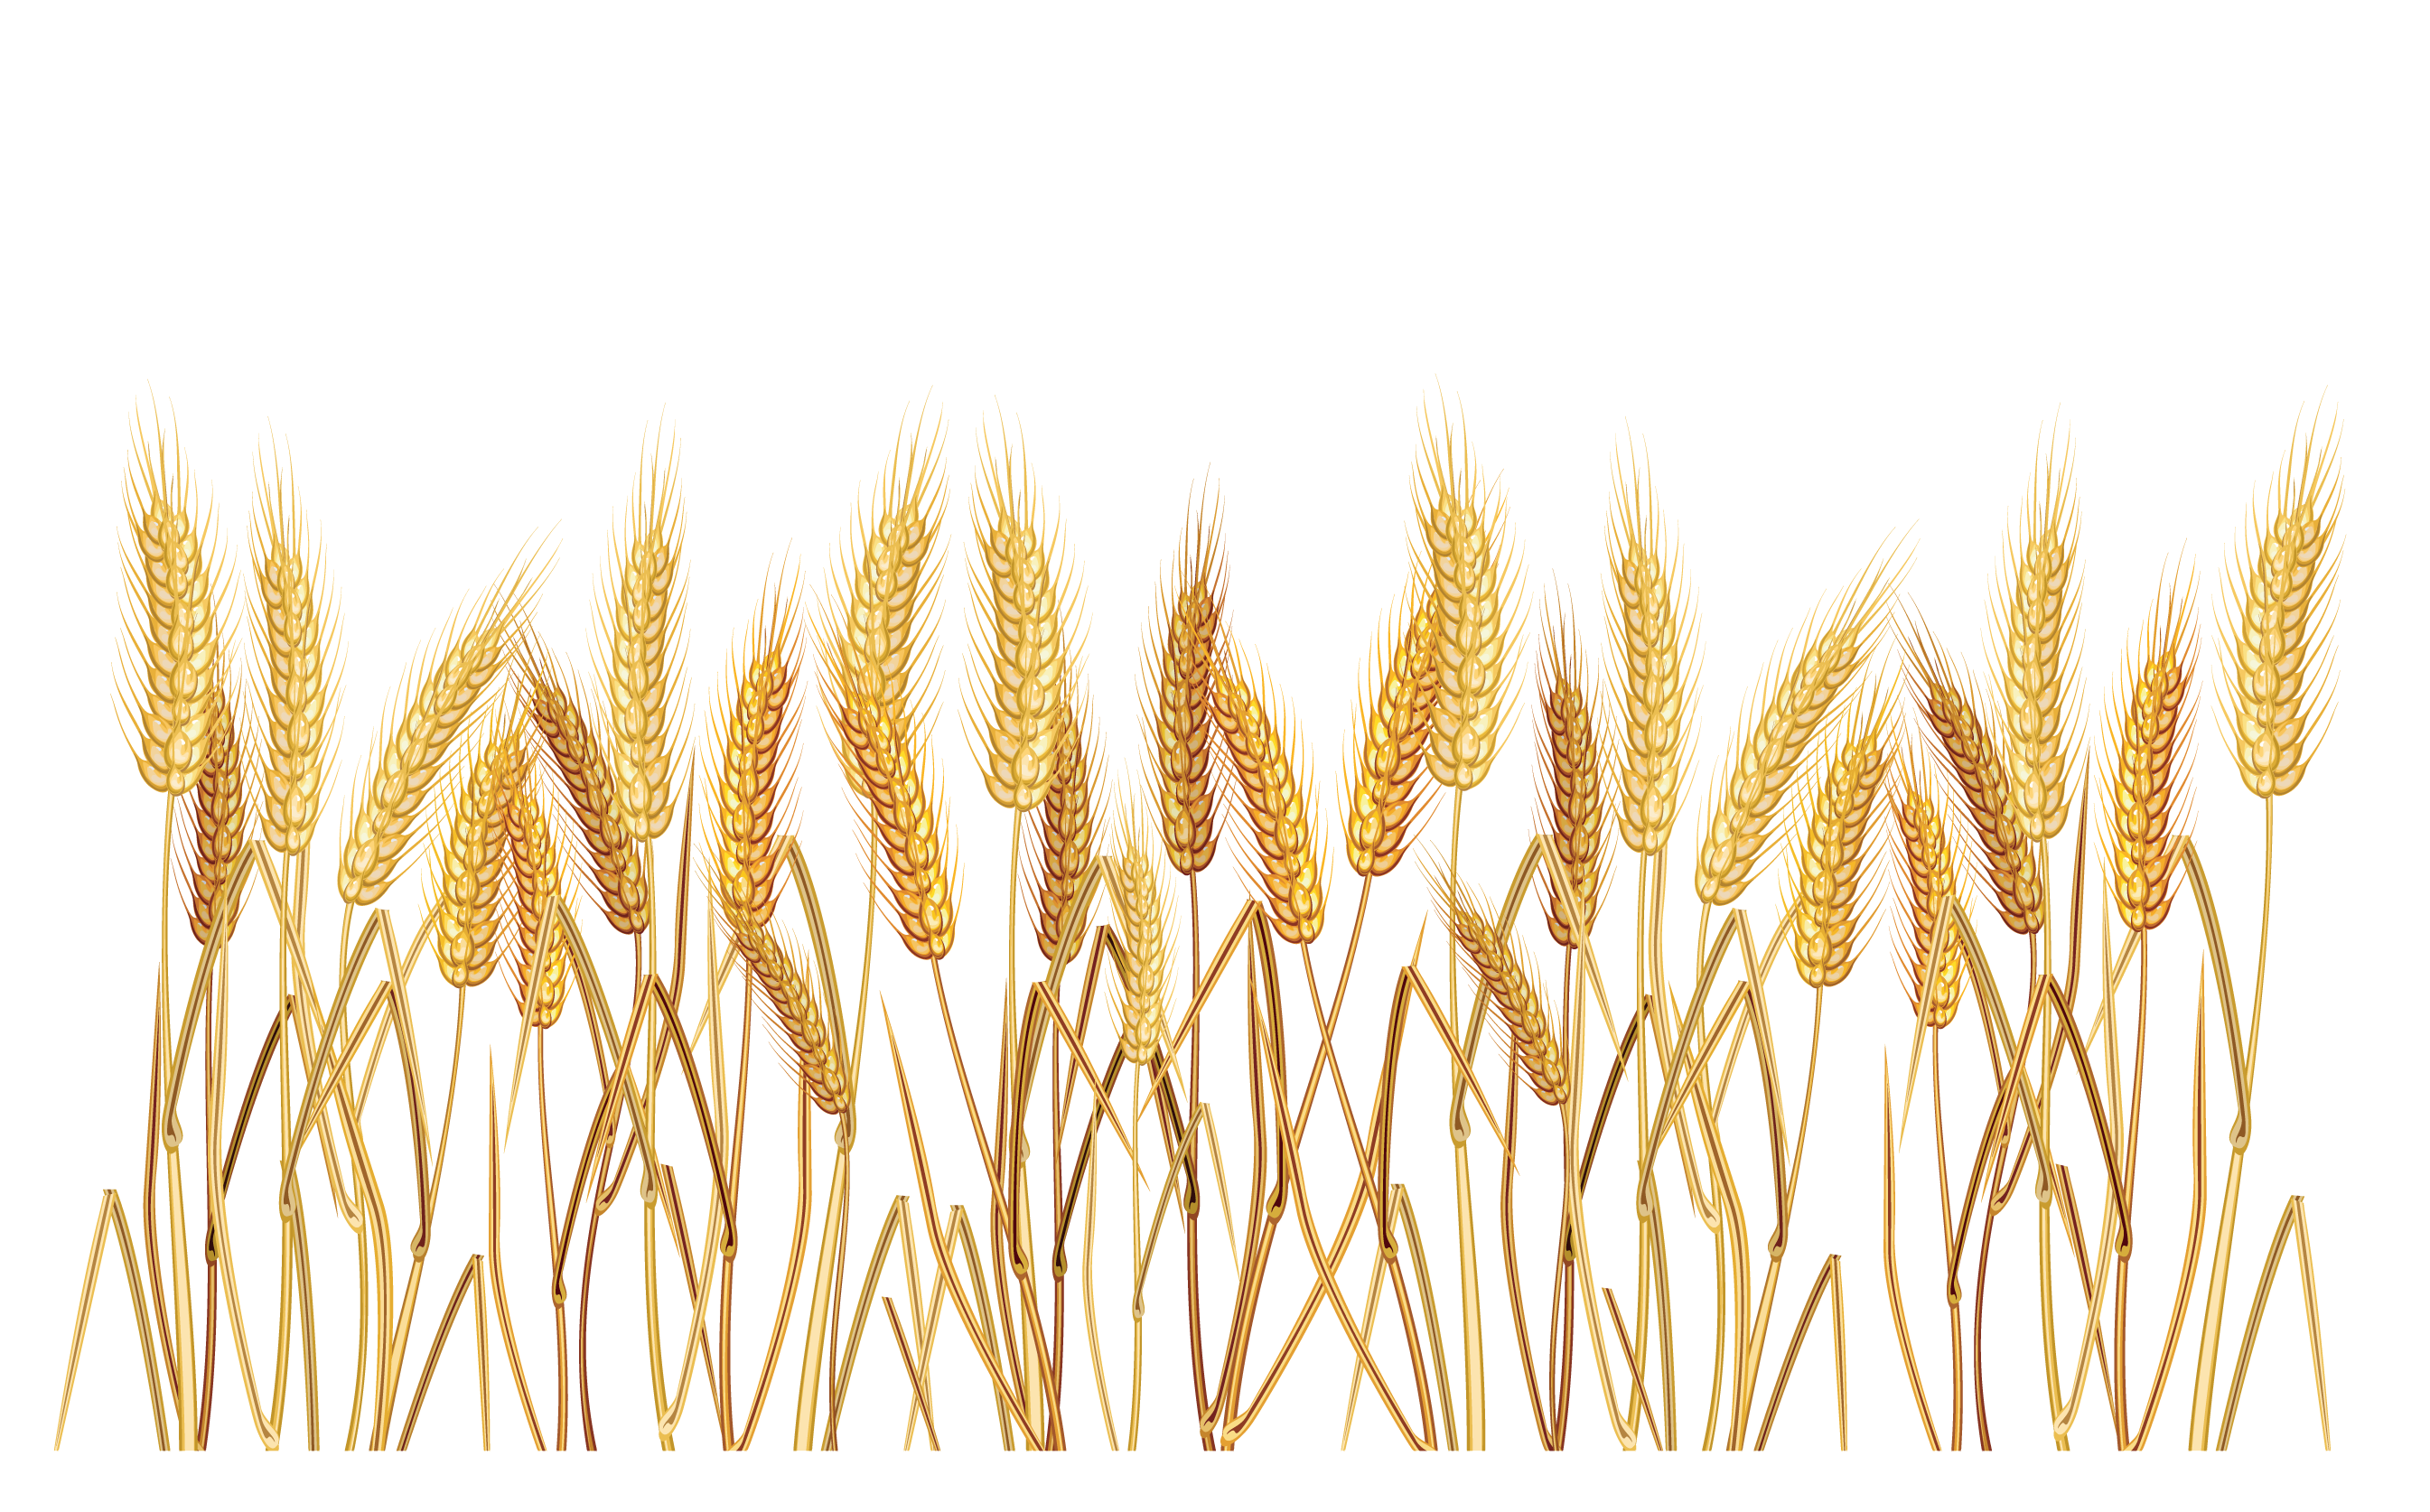 Wheat grass png. Wheatgrass transparent clipart picture